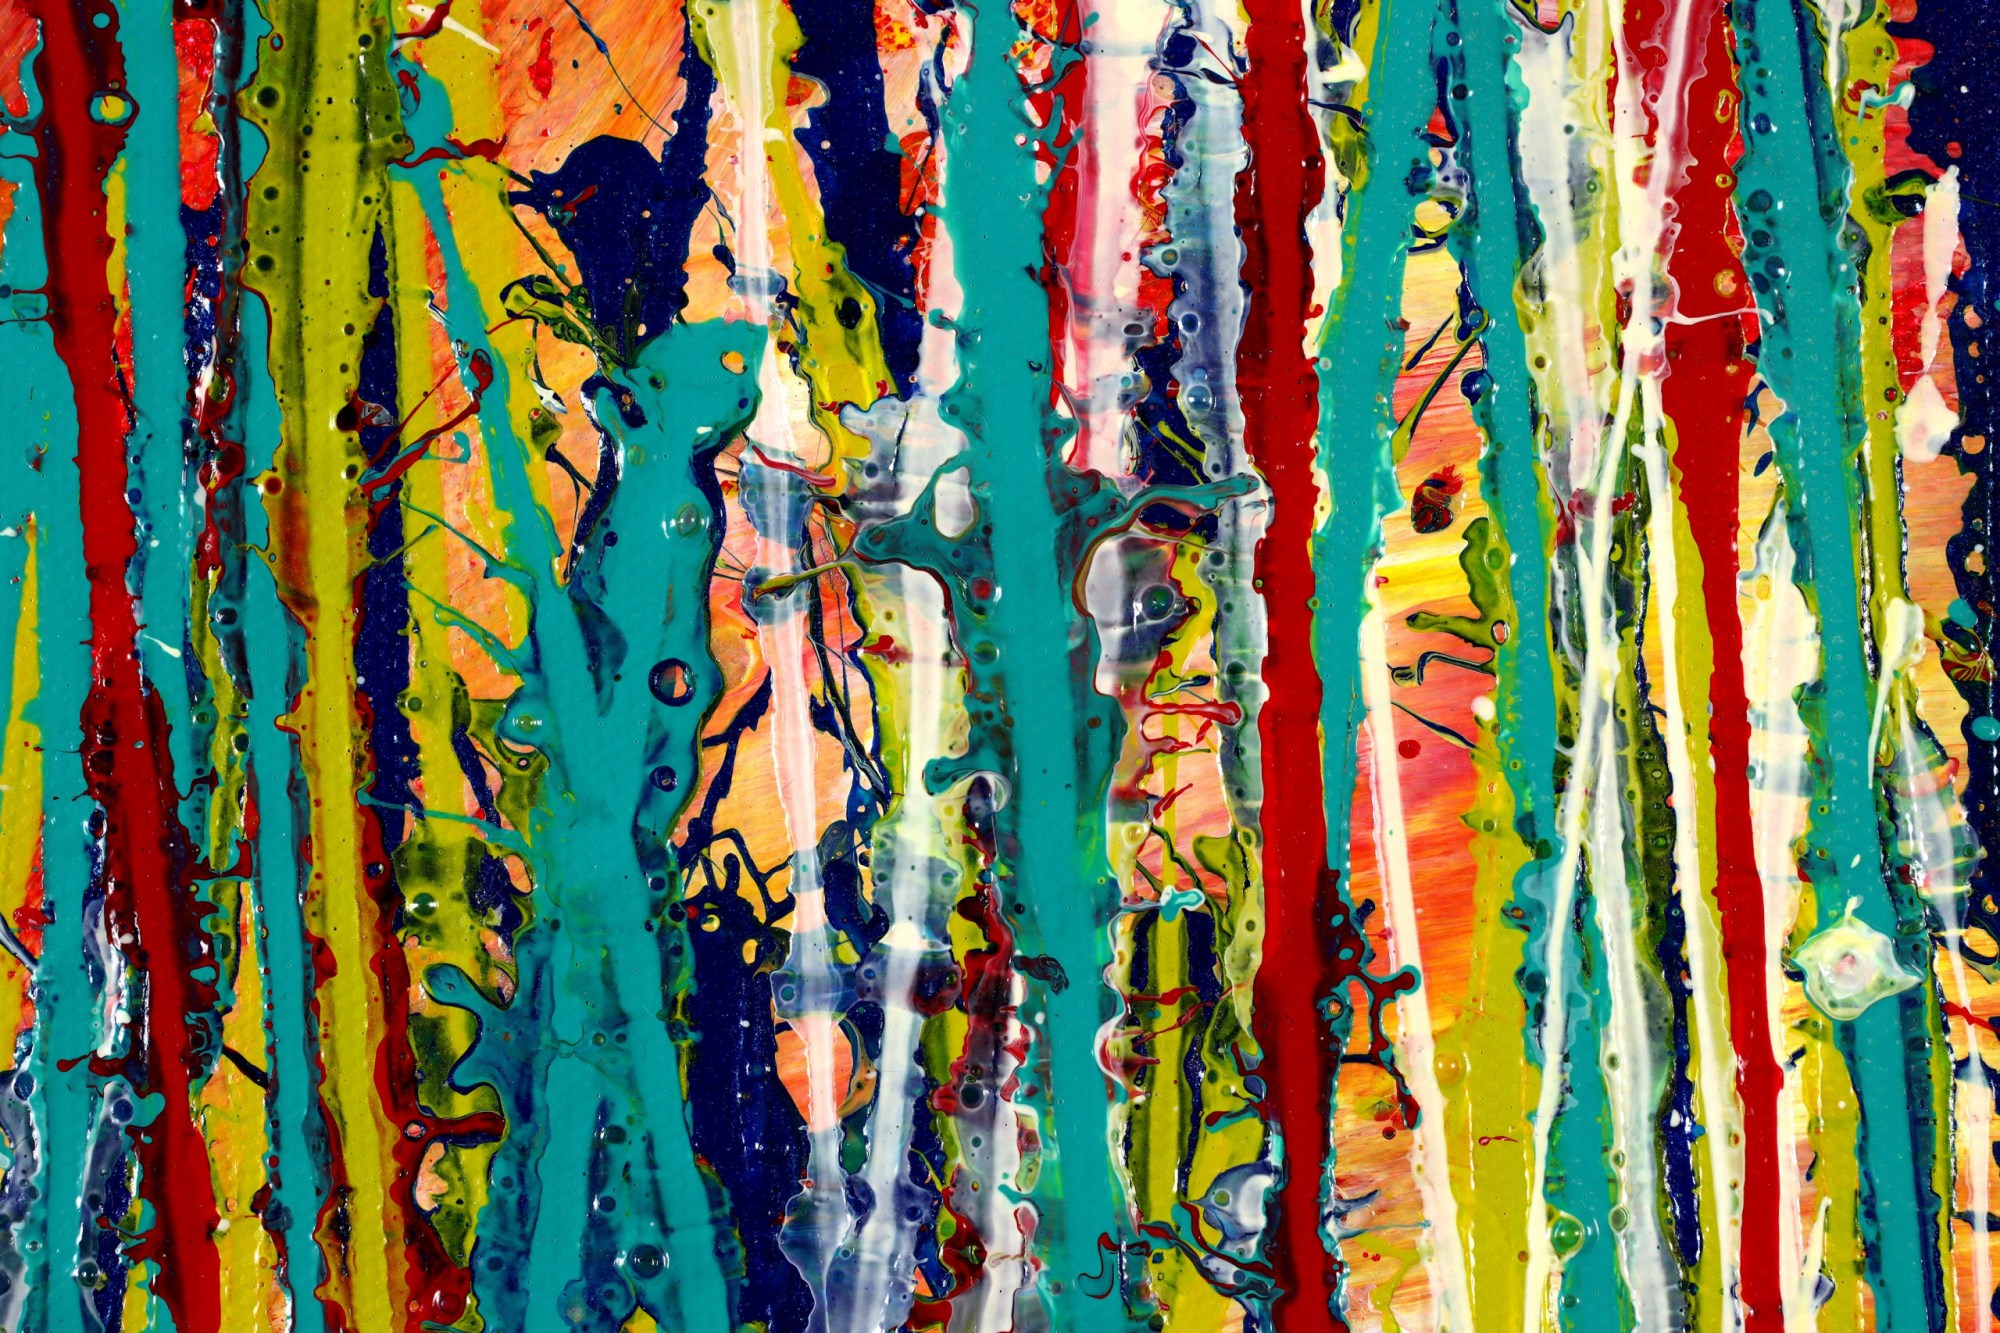 DETAIL / Autumn Motion (2021) - Ready to Hang - 48x24 inches